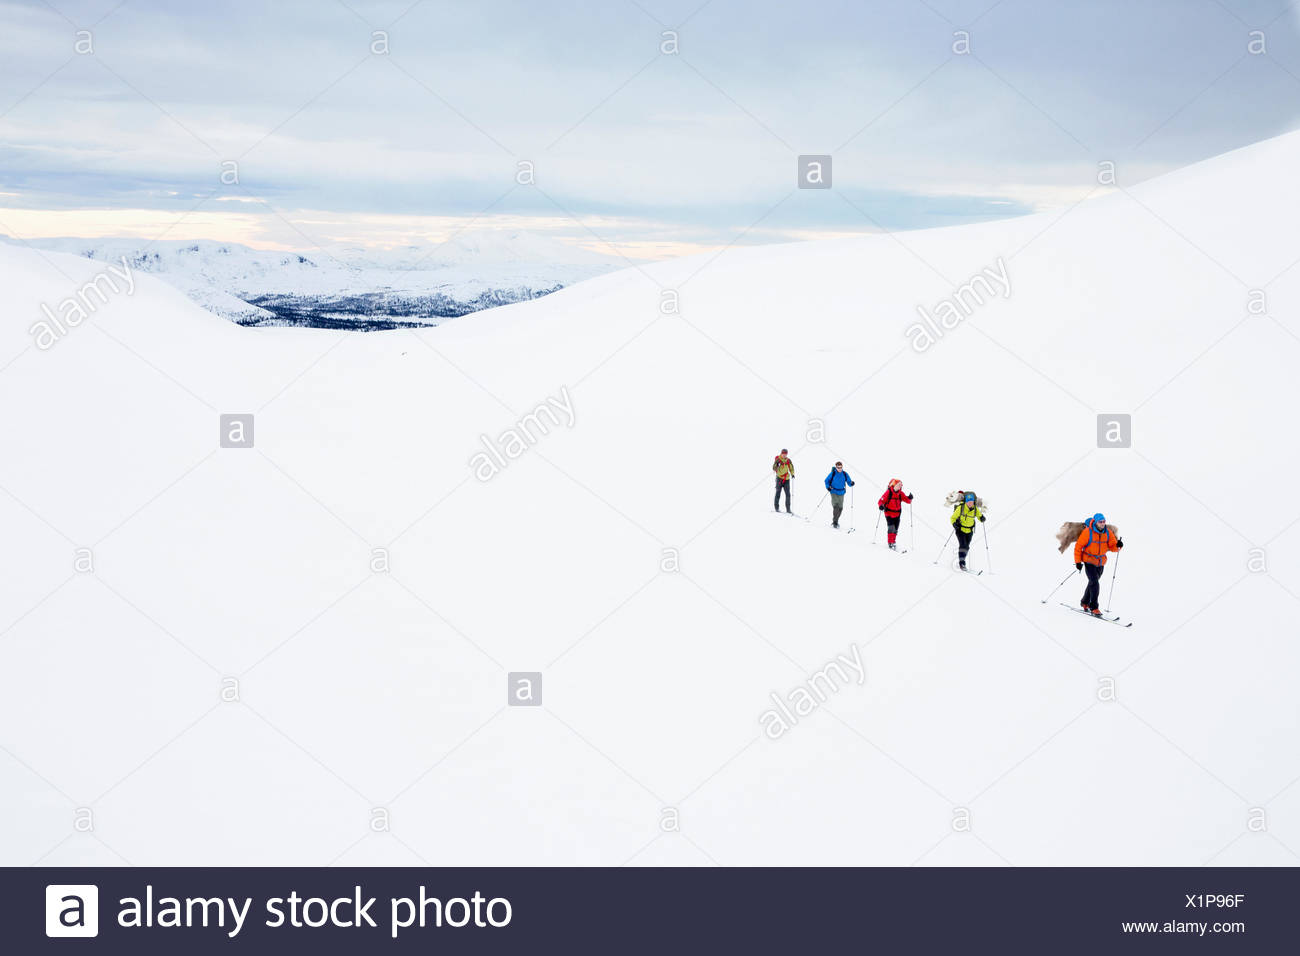 People skiing at sunset - Stock Image